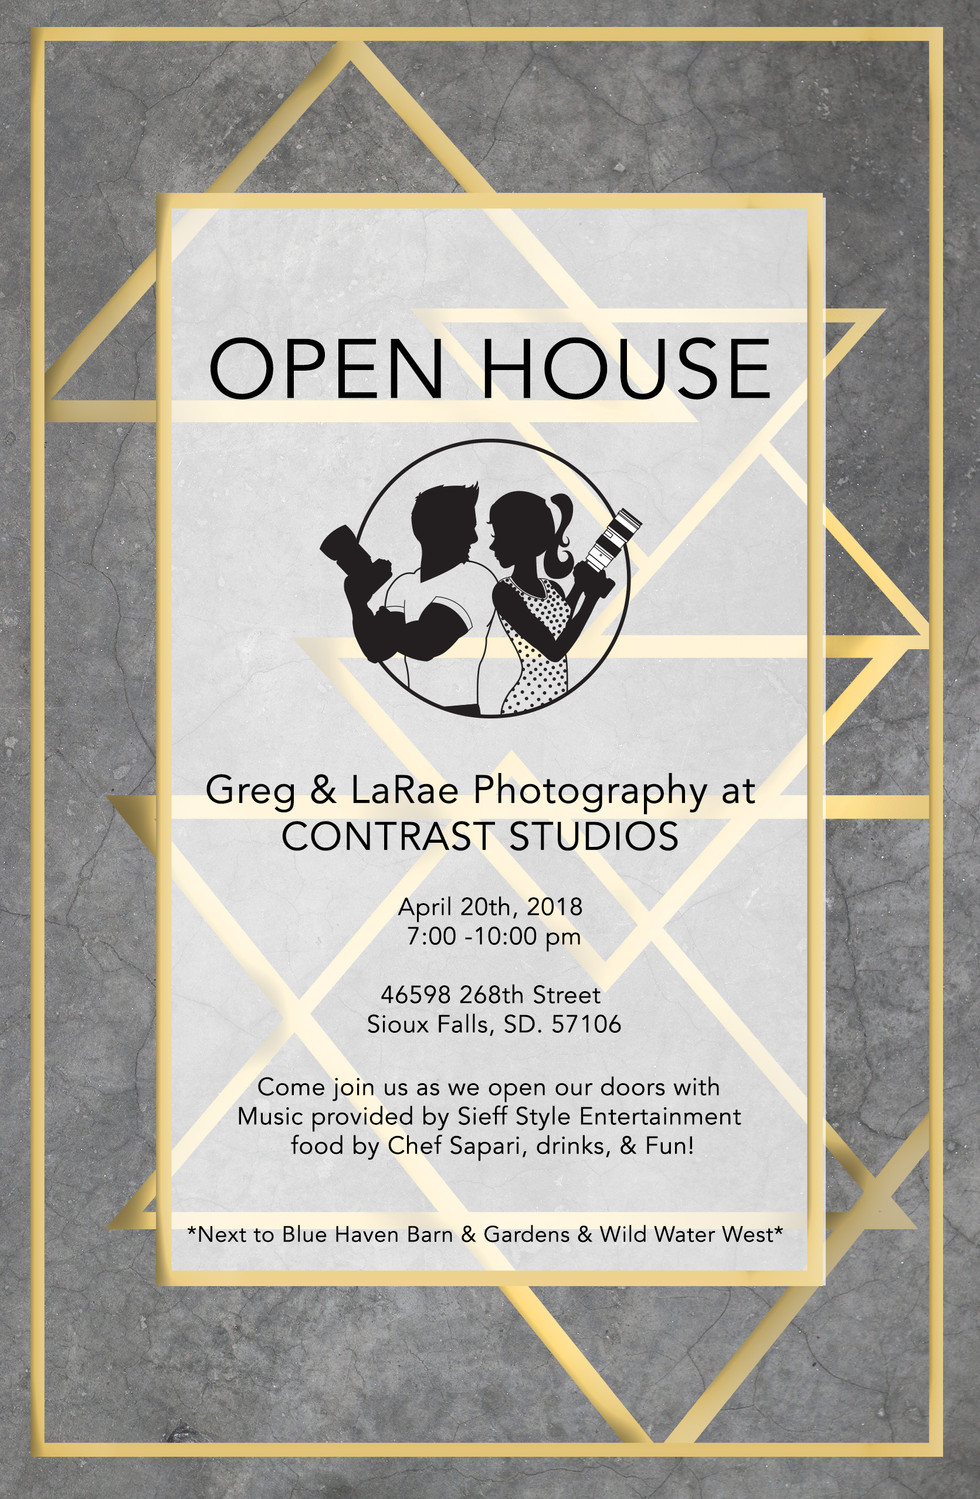 GRAND OPEN HOUSE PARTY